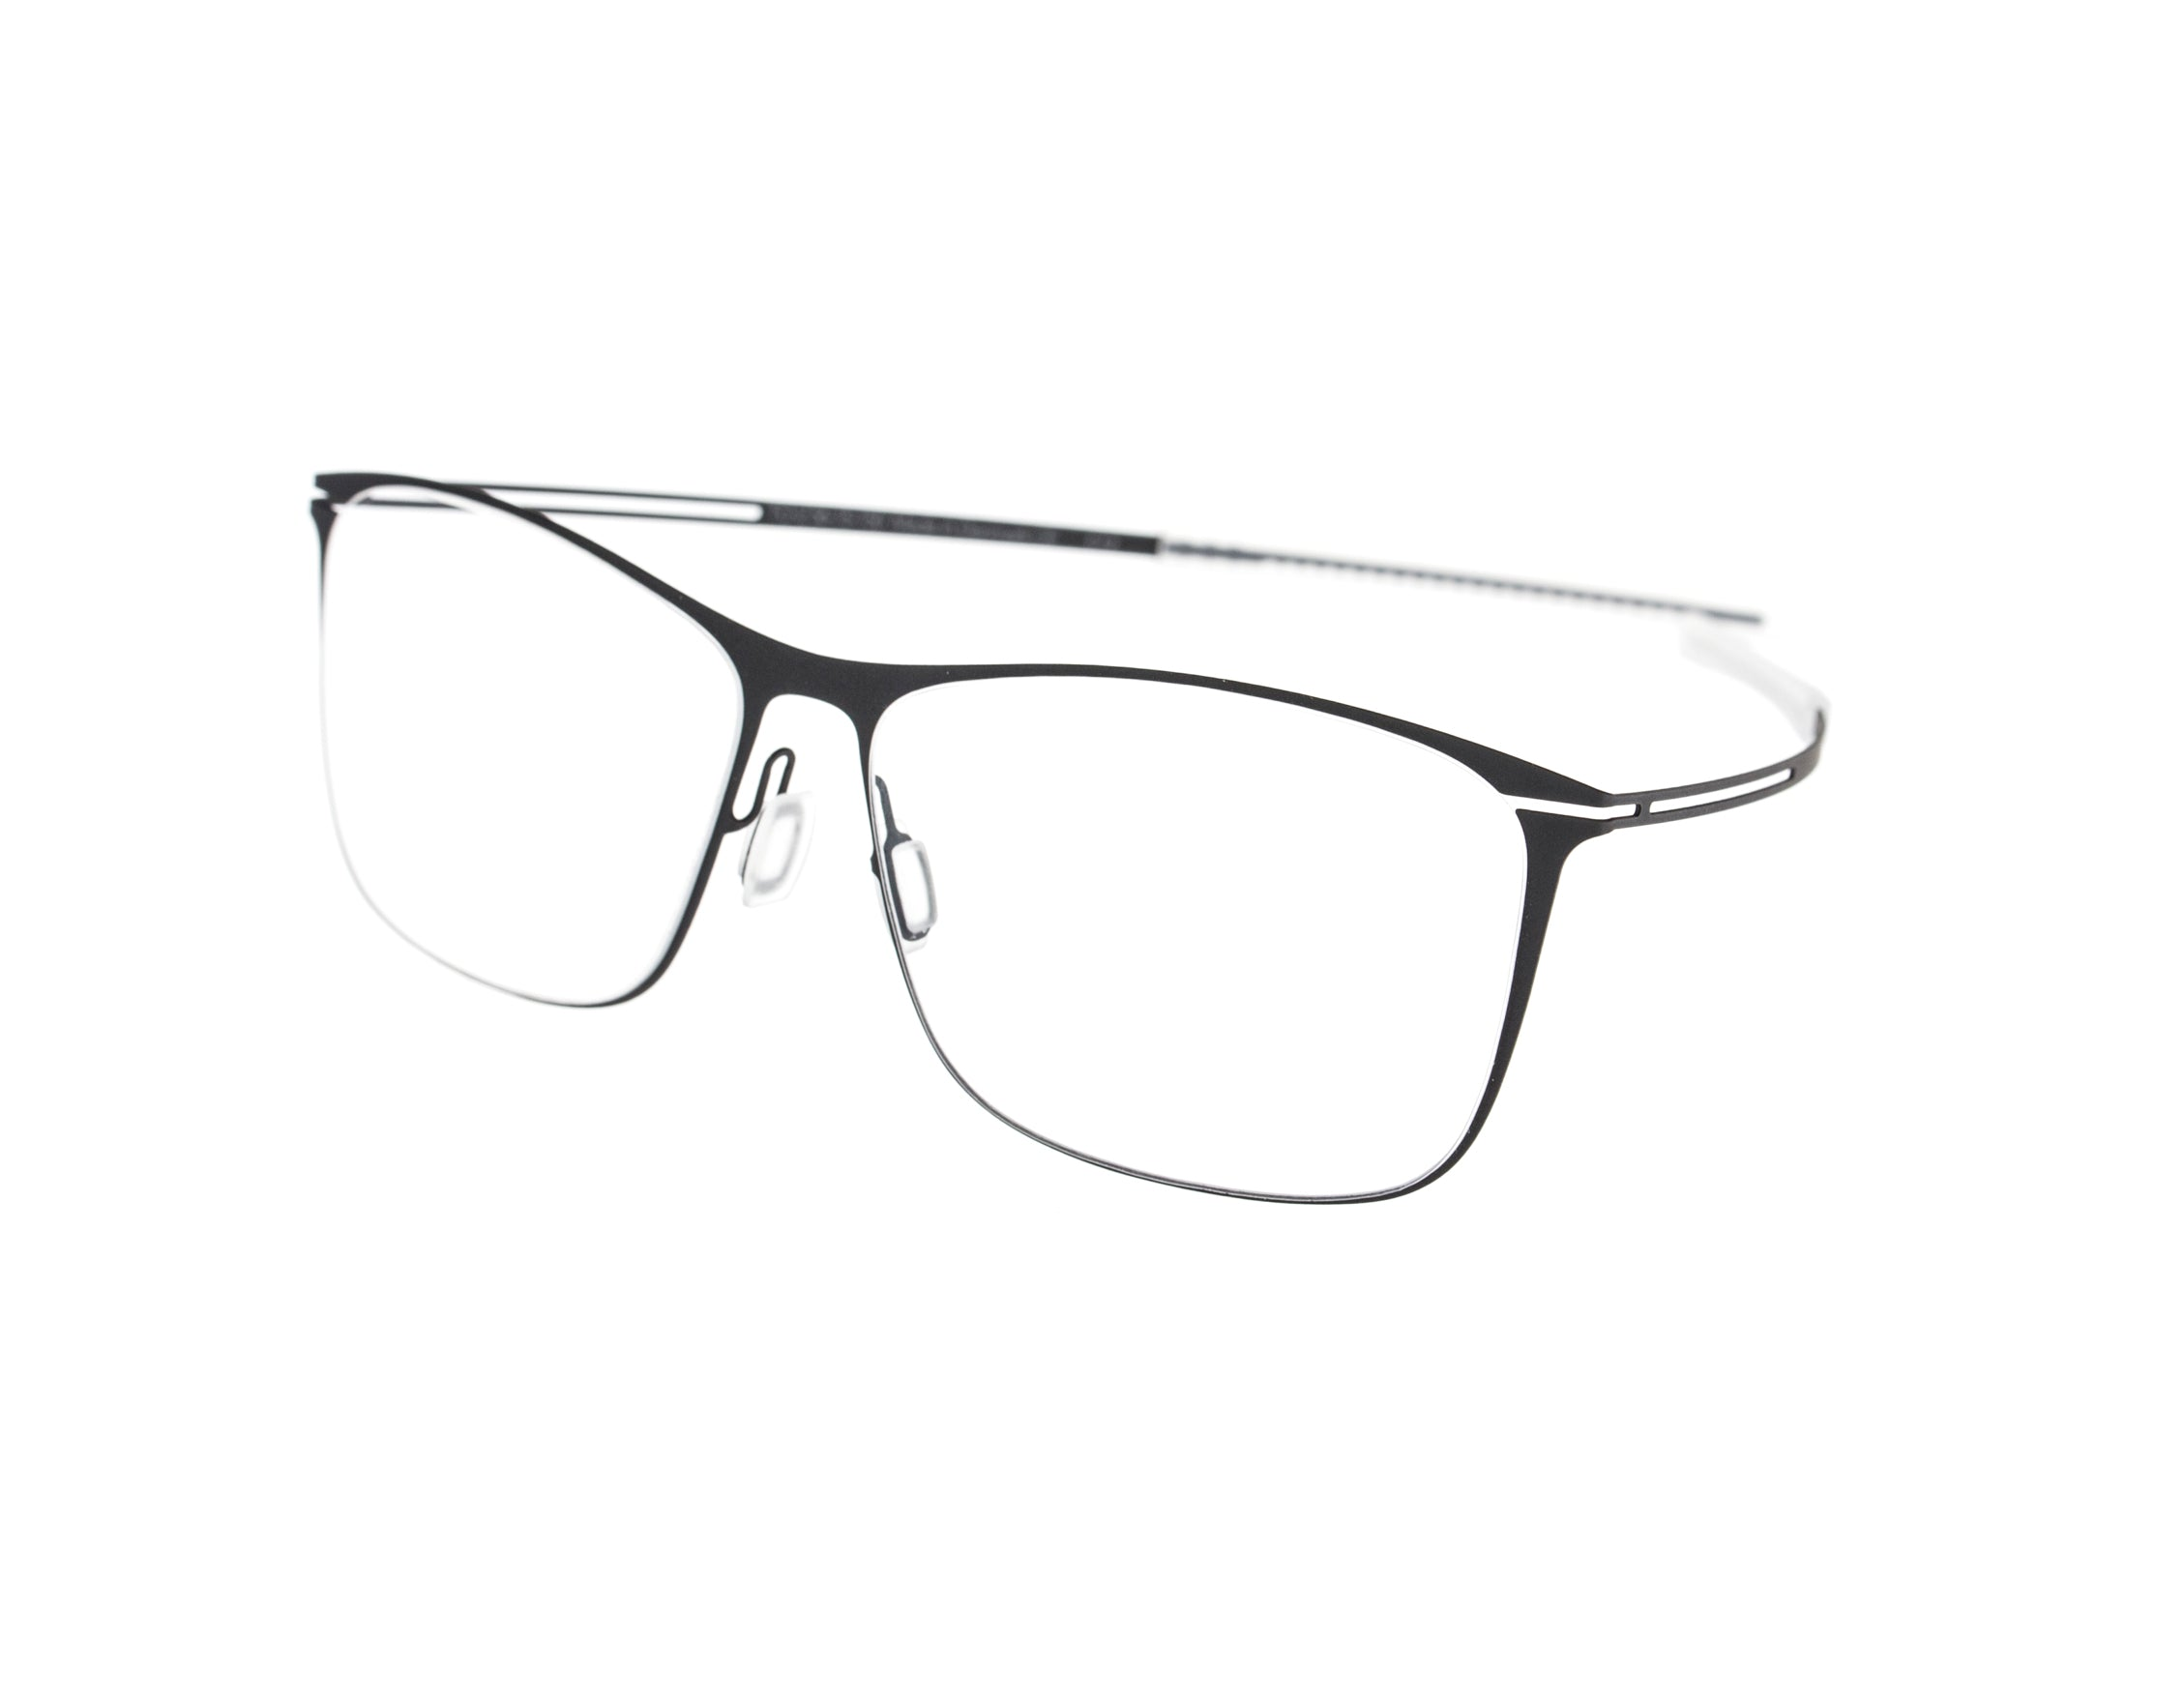 ONE by Thomsen Eyewear -  TO-2 col. 12